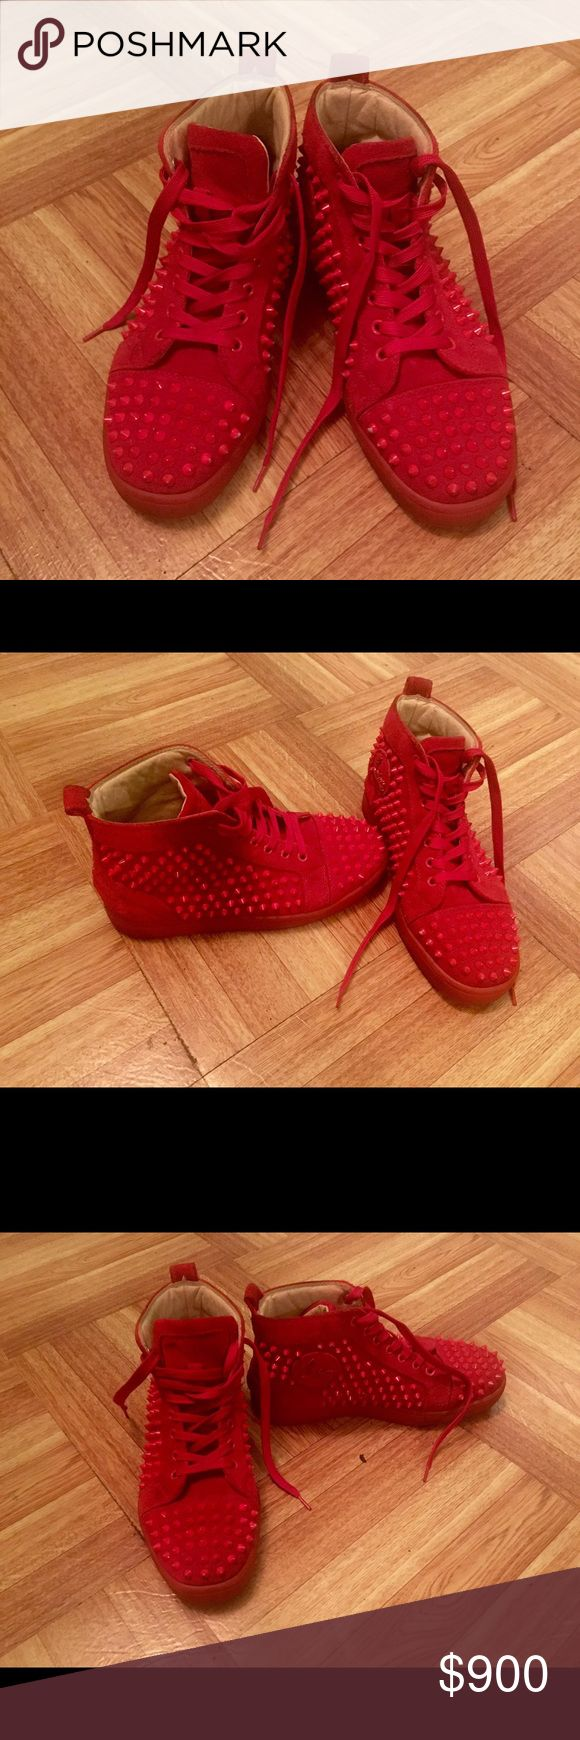 Christian Louboutin Red Studded Sneakers 36 US 6 Worn a couple of times (2,3) therefore they are in excellent condition. Red studded sneakers for women in size 36. Christian Louboutin Shoes Sneakers